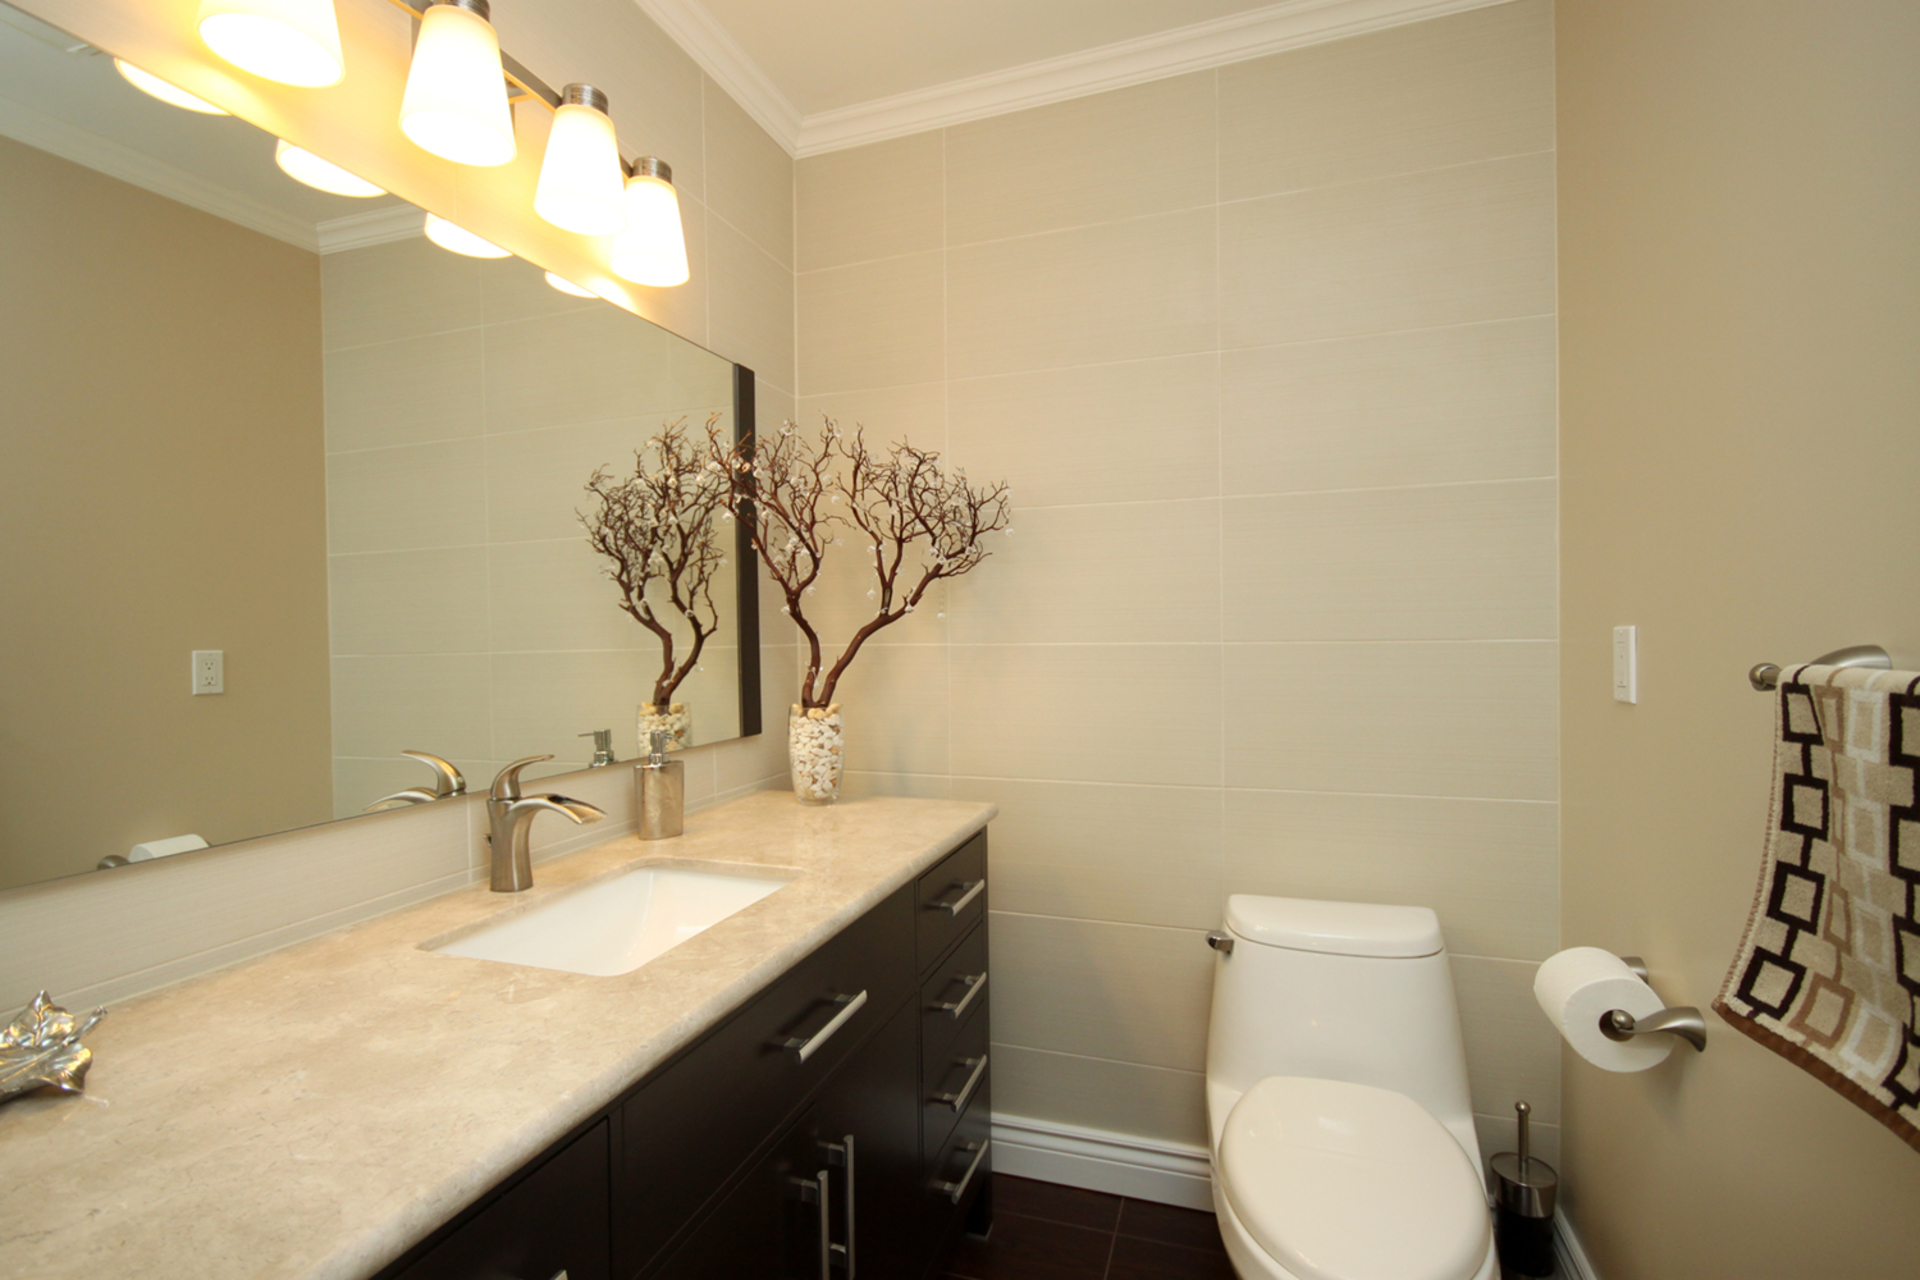 2 Piece Bathroom at 14 Gretman Crescent, Aileen-Willowbrook, Markham